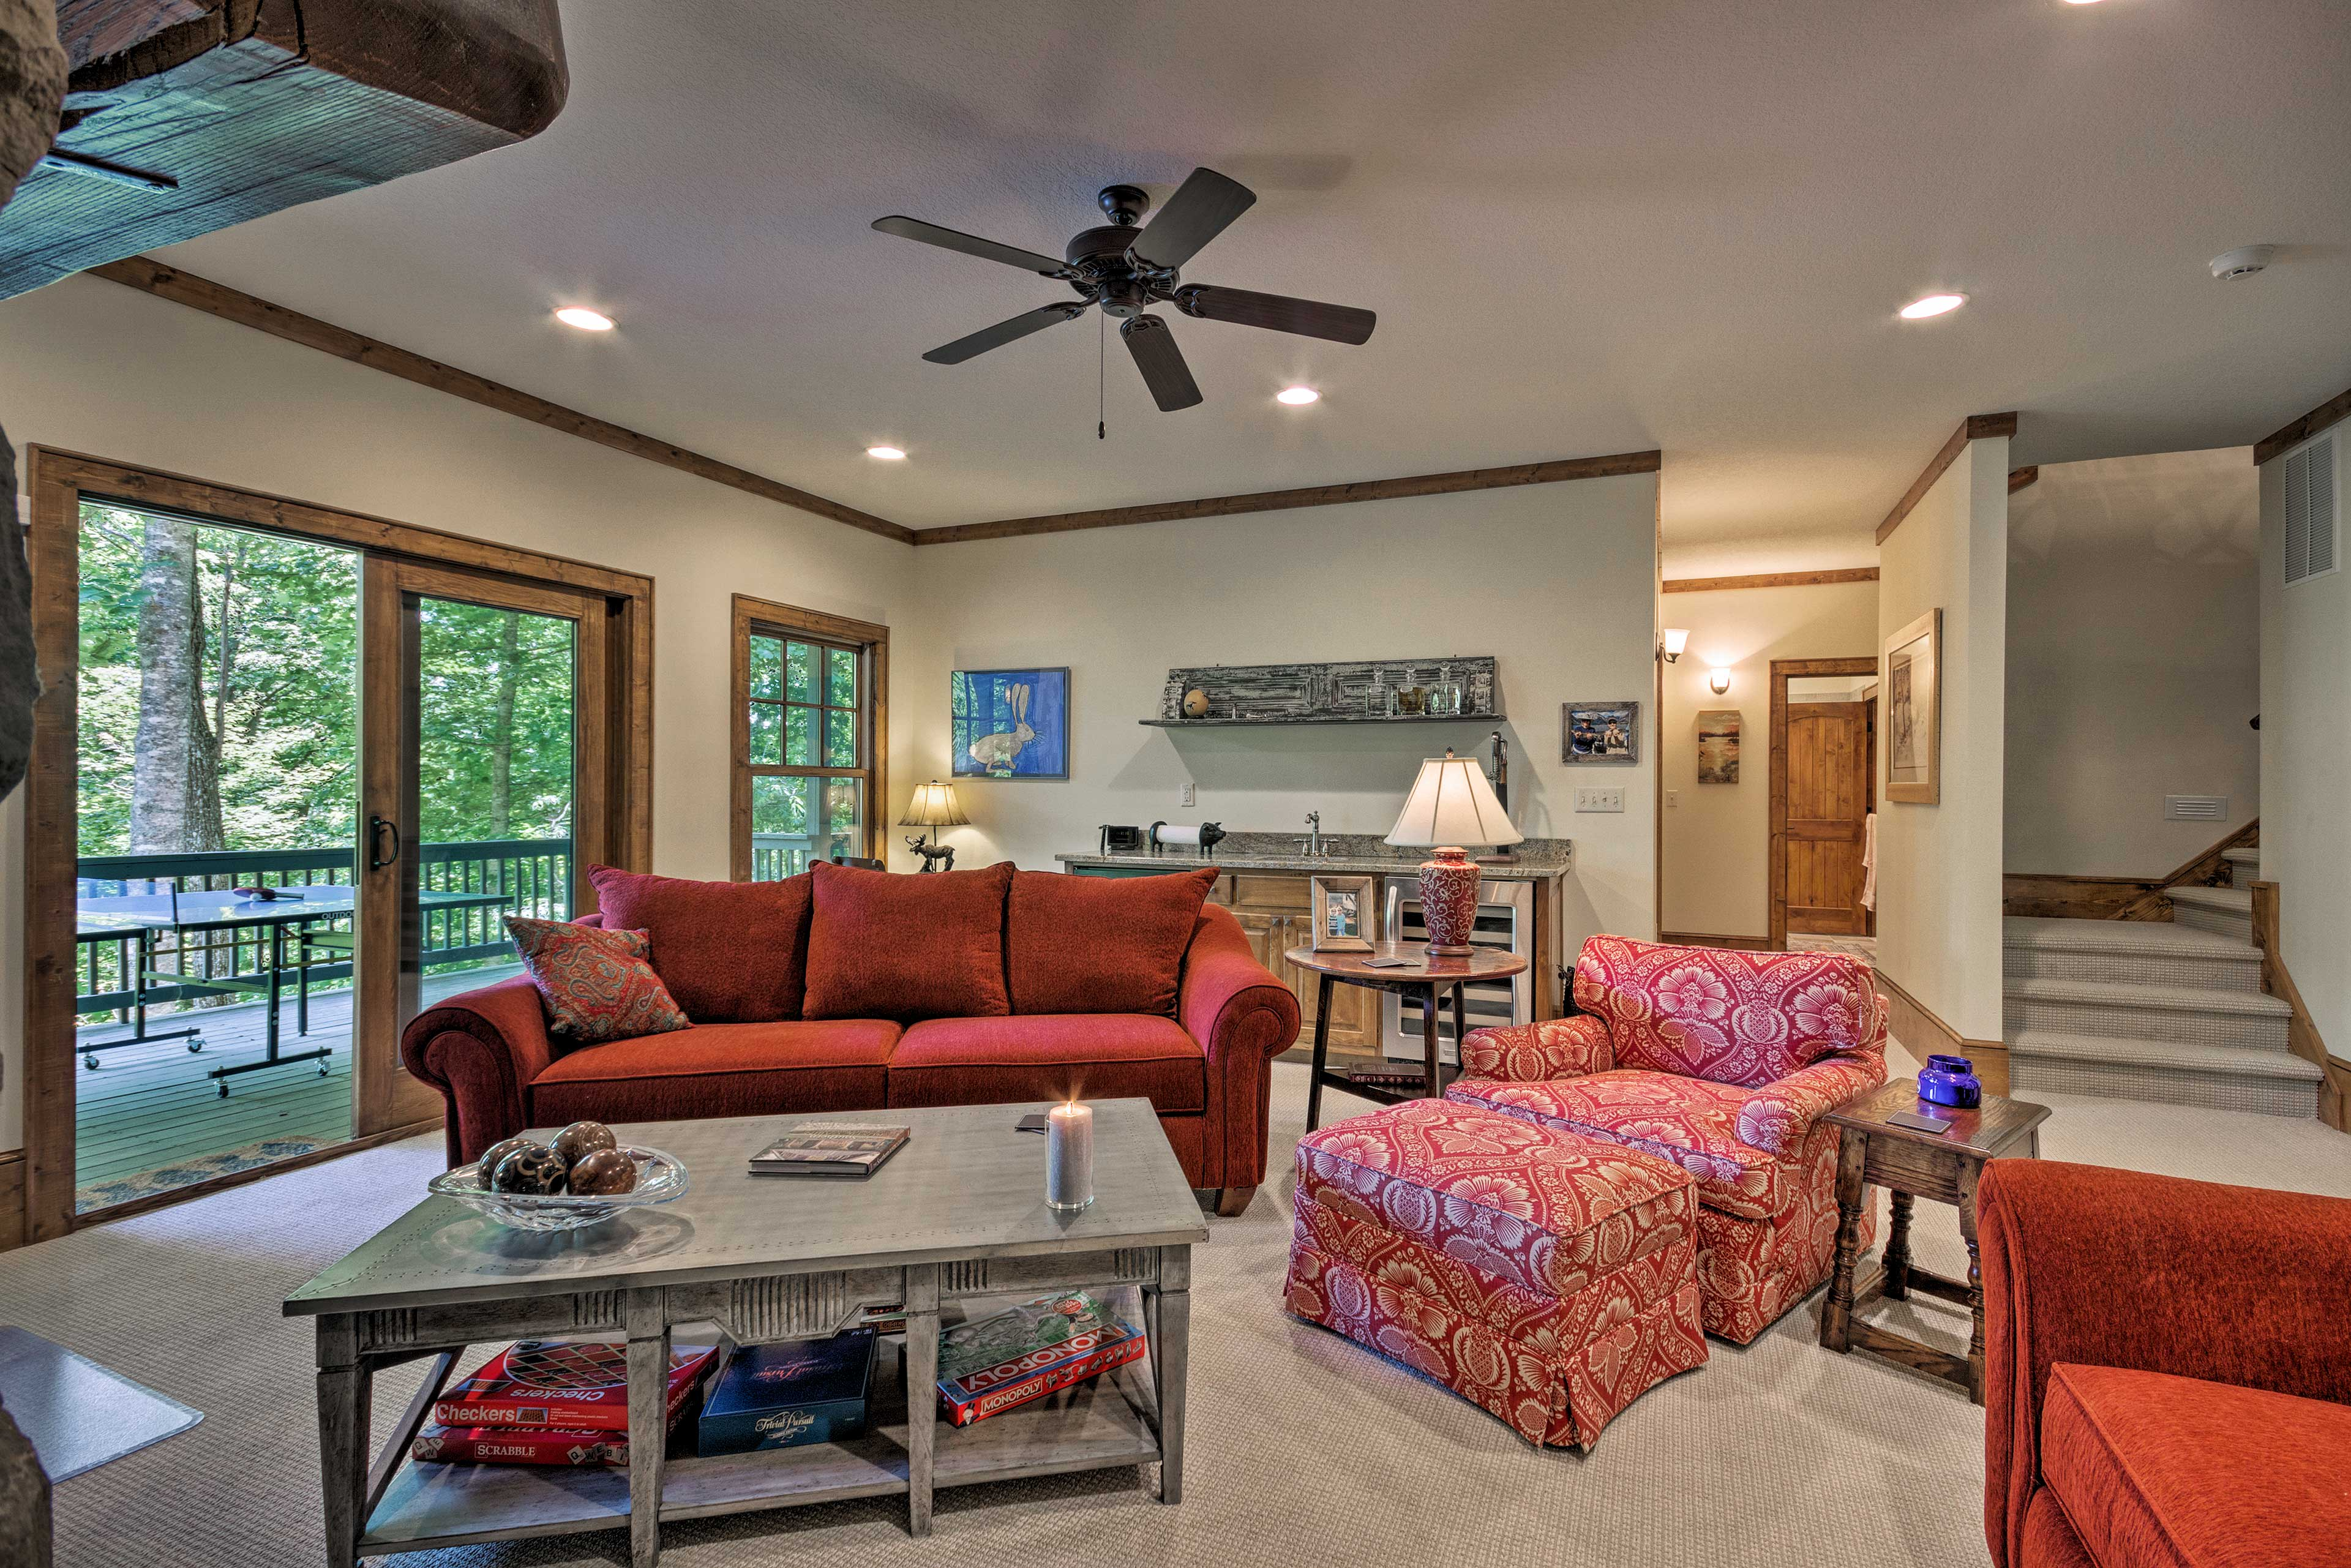 The home features an additional living room.